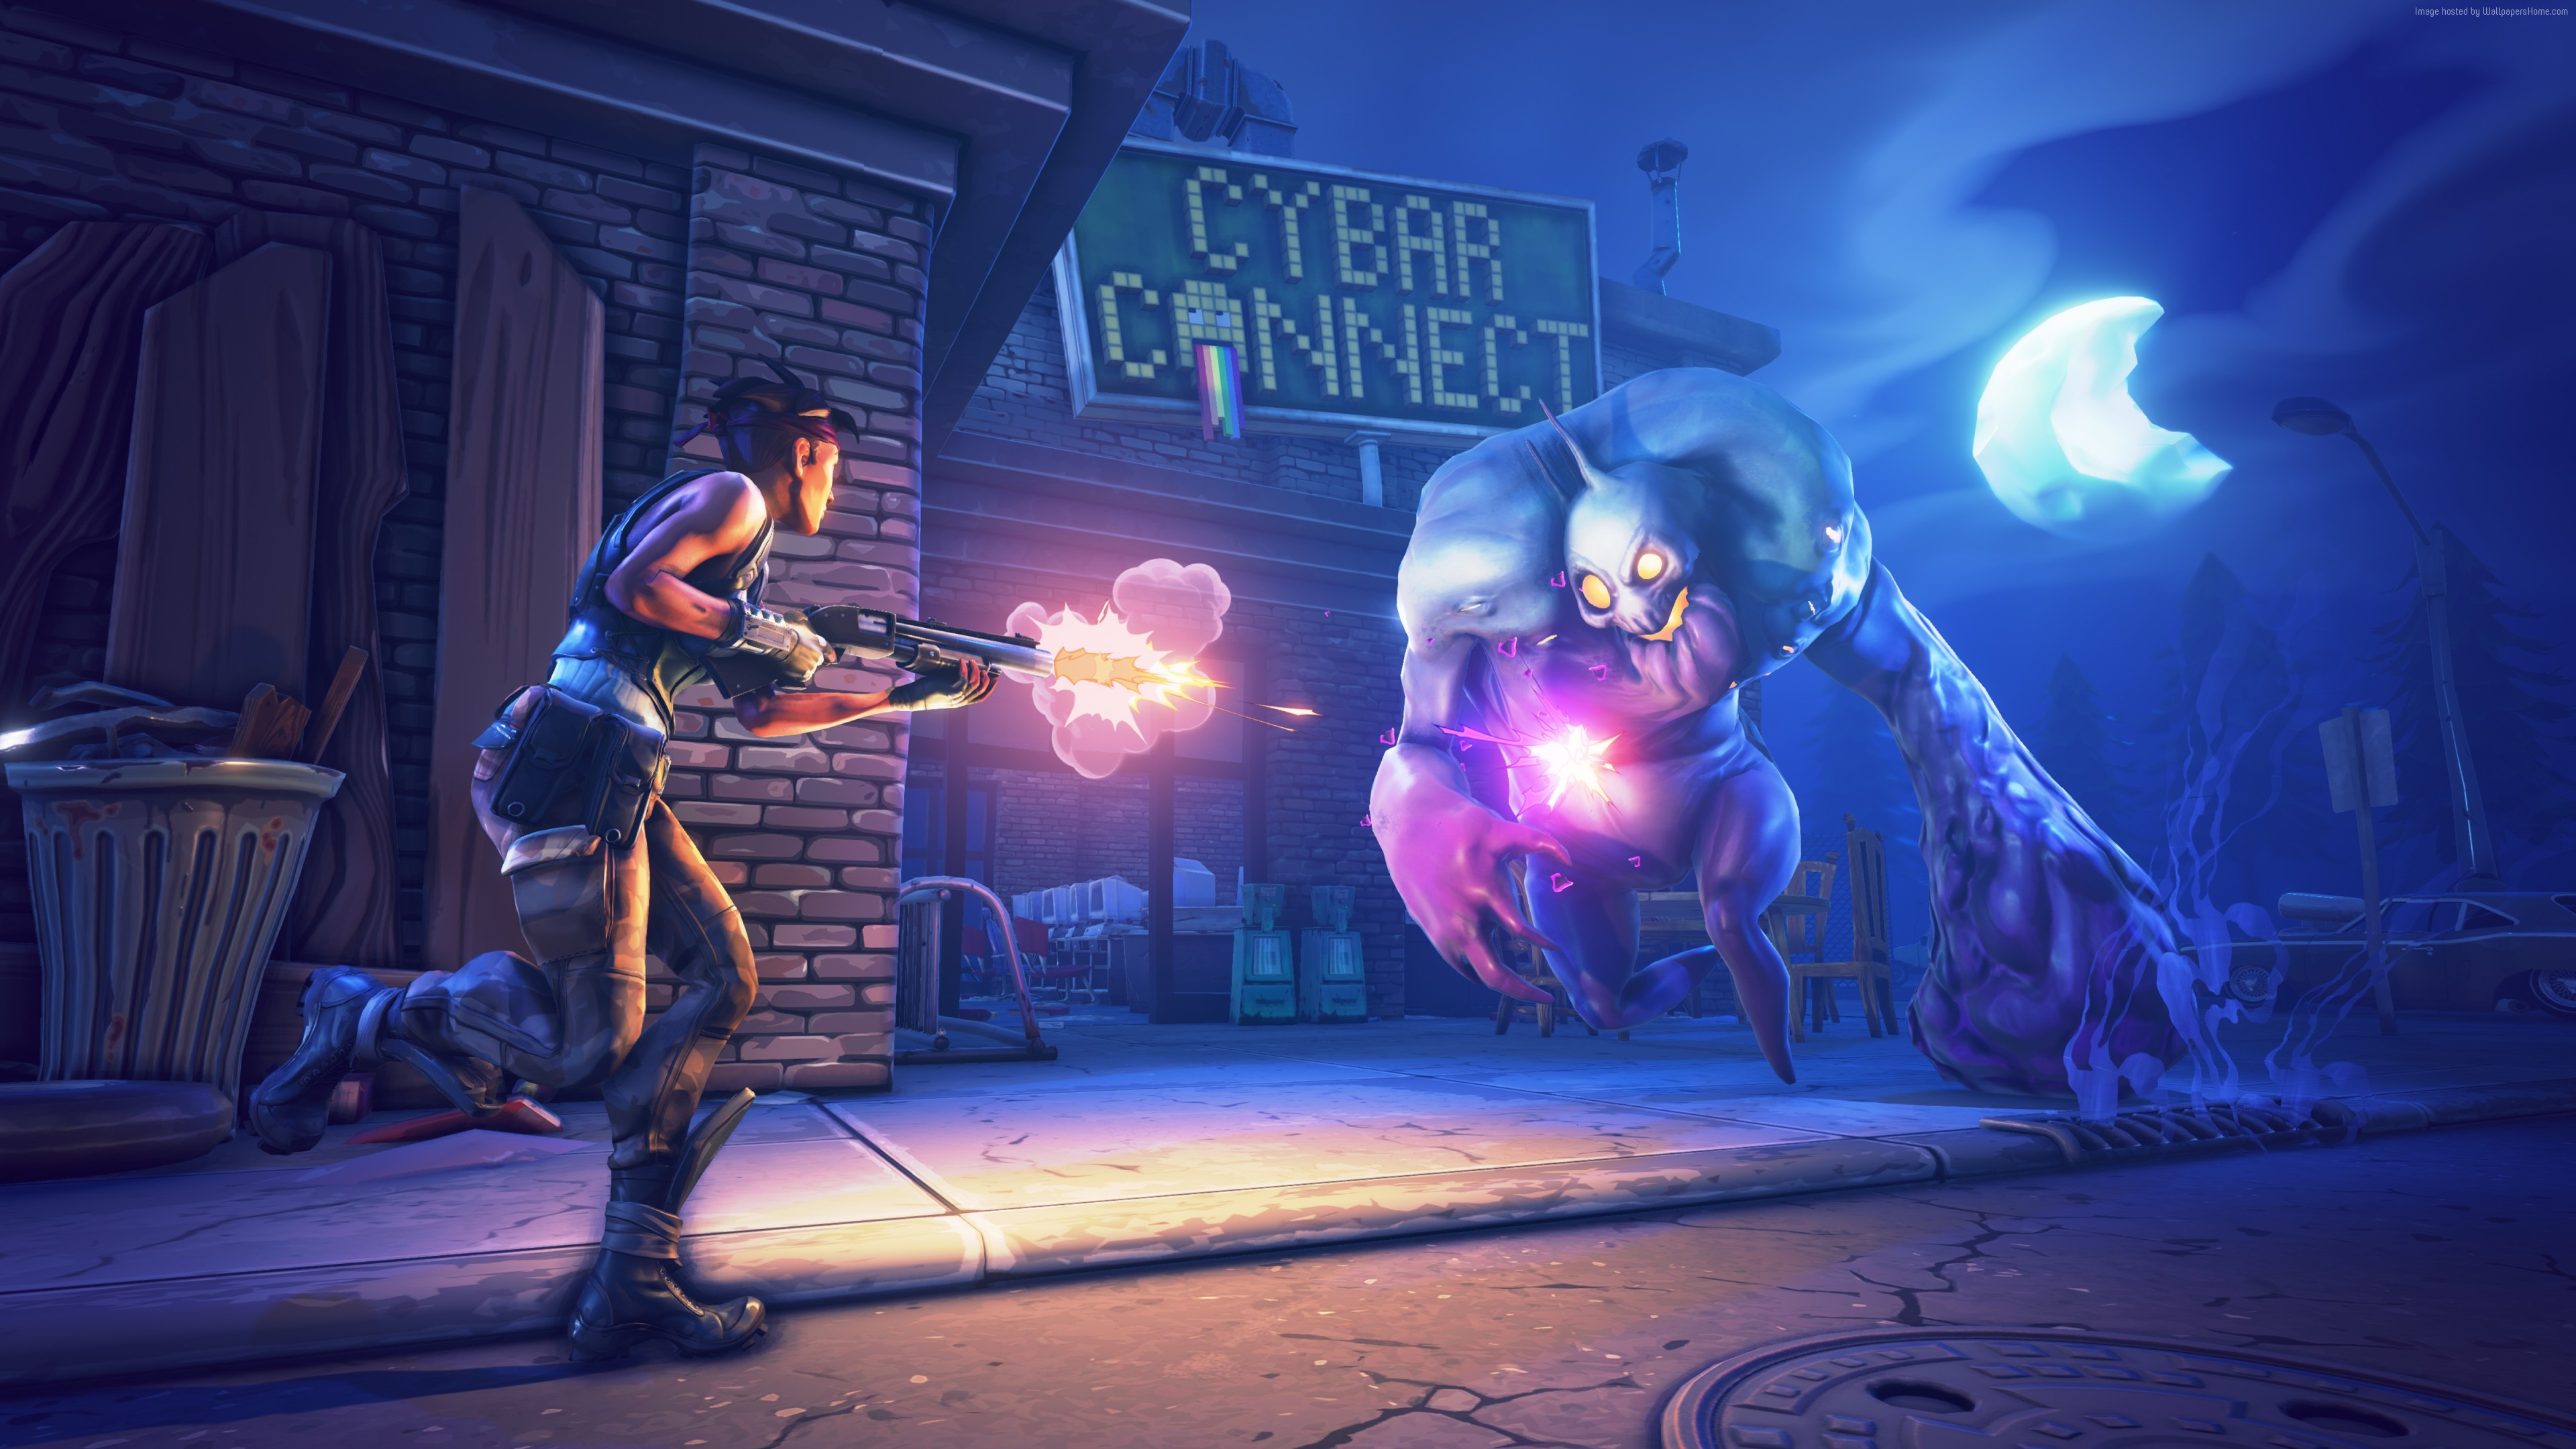 Fortnite 4k Hd Games 4k Wallpapers Images Backgrounds Photos